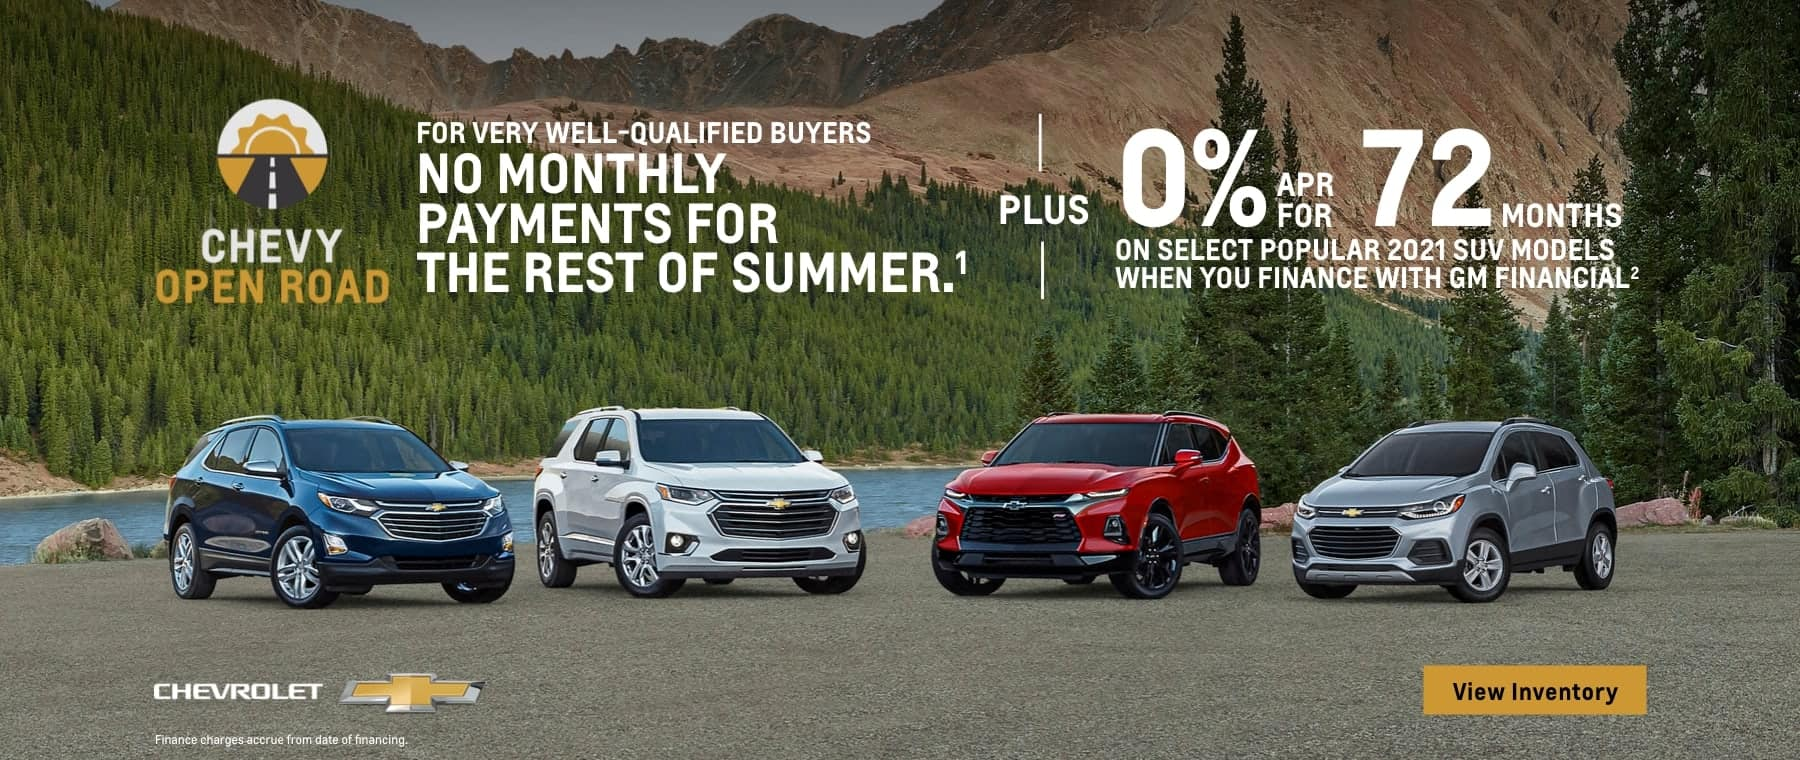 Chevy Open Road. No monthly payments for the rest of summer for vey well-qualified buyers. Plus, 0% APR for 72 months on select popular SUV models when you finance with GM Financial.